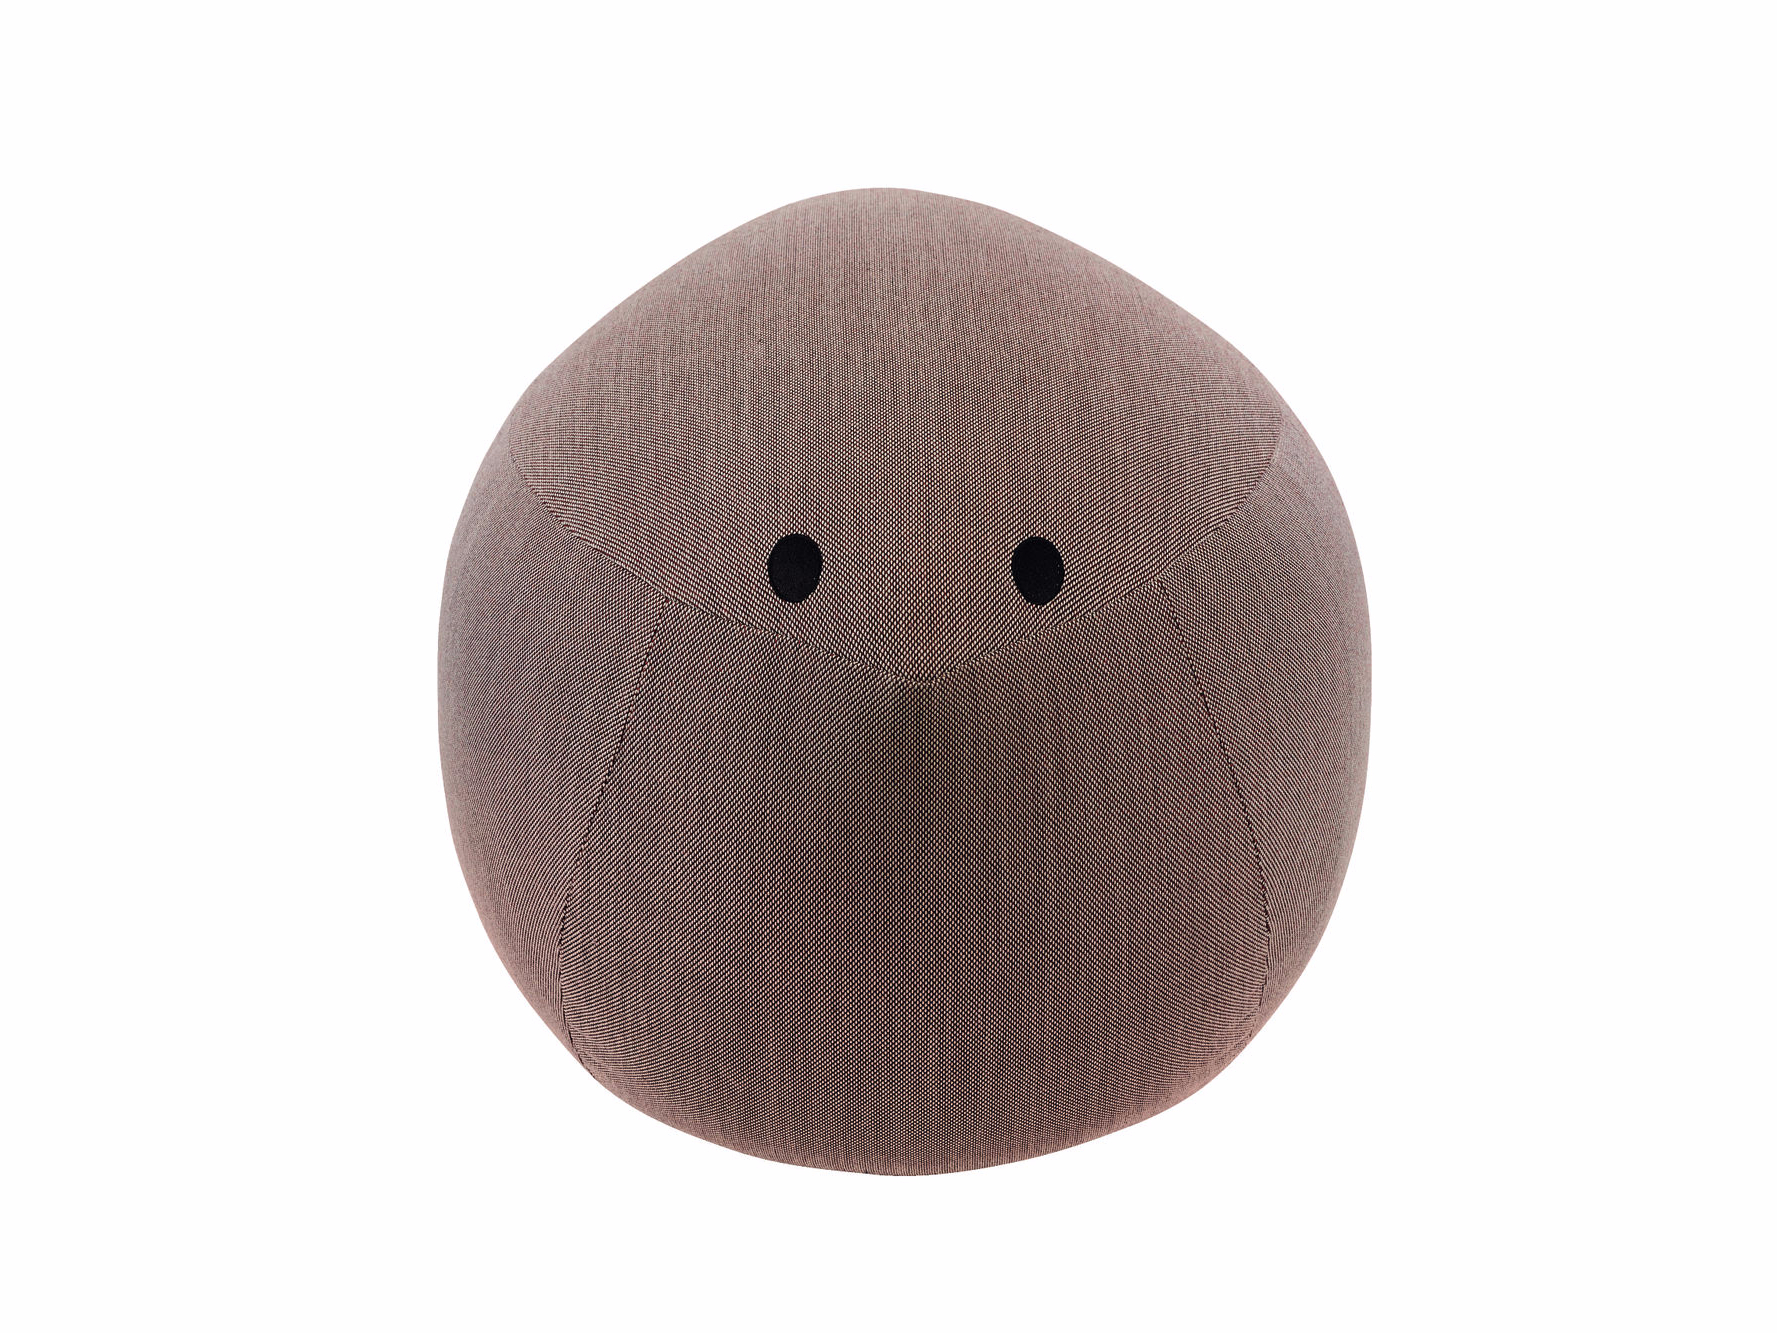 Now Upholstered Fabric Kids Pouf Now Birdy Hulsta Werke Huls furthermore Trane Xr17 Conditioner additionally Expert Tips On How To Safely Use A Space Heater also Whole House Dehumidifier further Air Conditioning Heating Options New Home Additions. on room heating and cooling systems